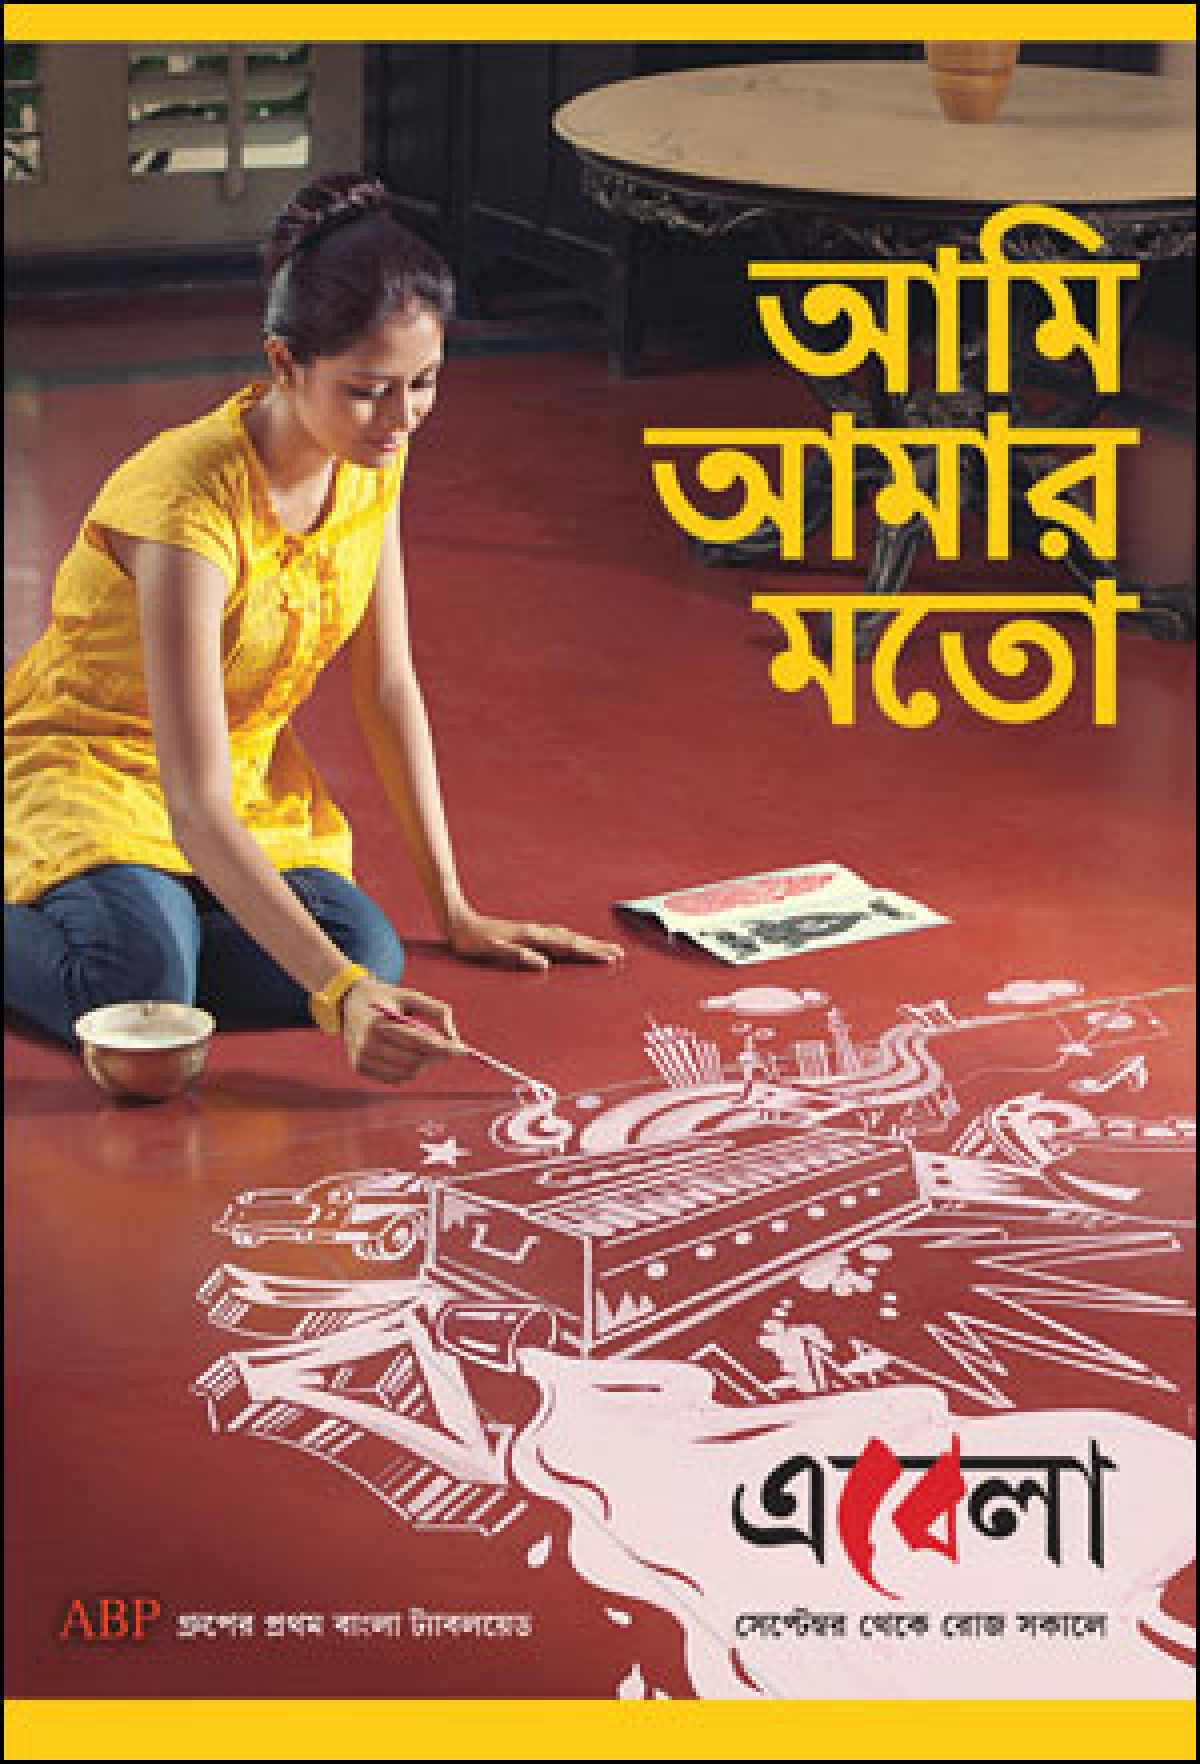 Ebela: Launching Kolkata's 'Tab' culture